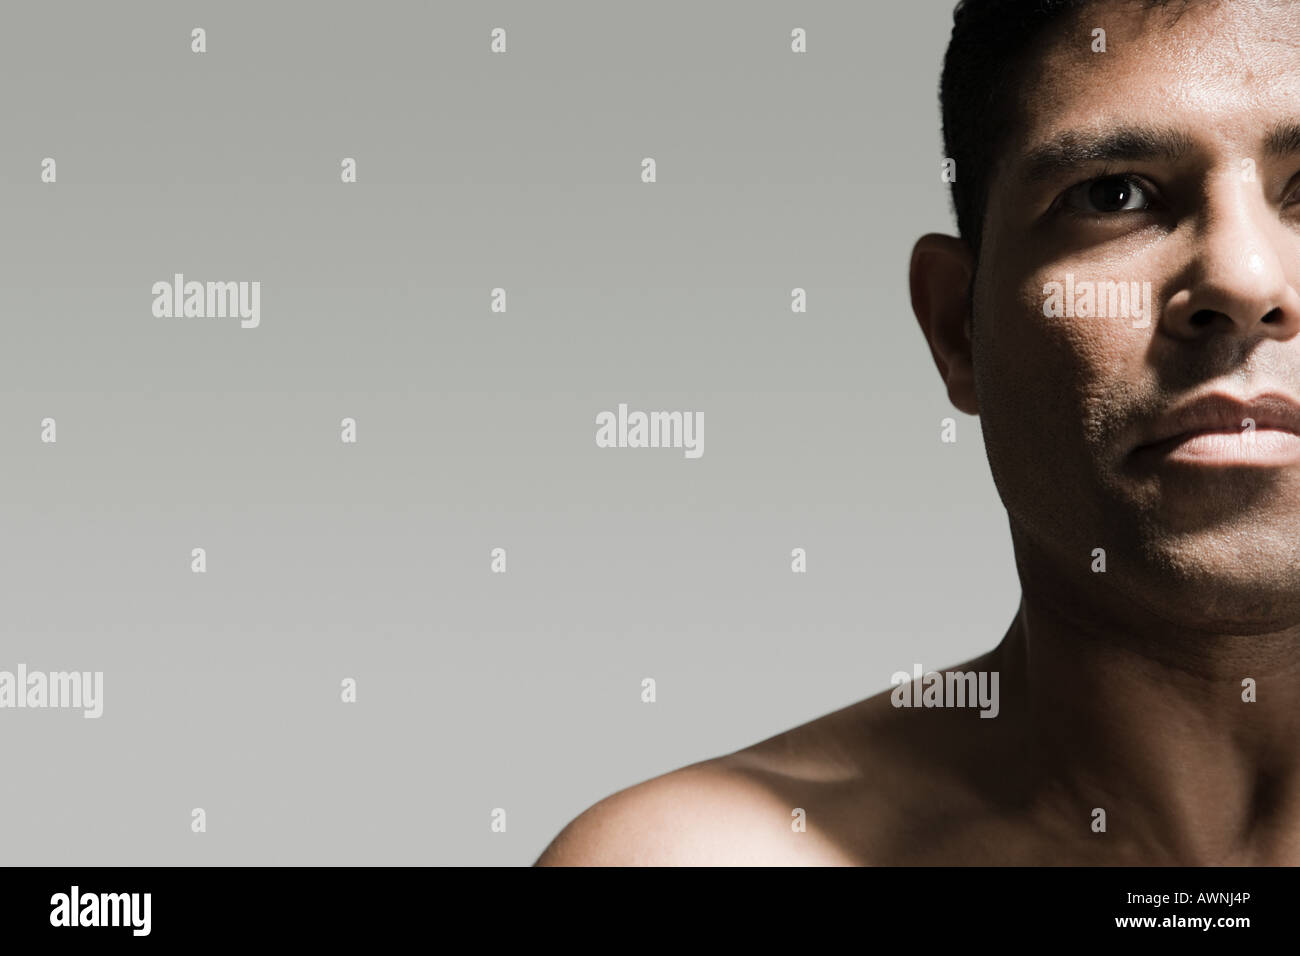 Cropped head and shoulders of a man - Stock Image